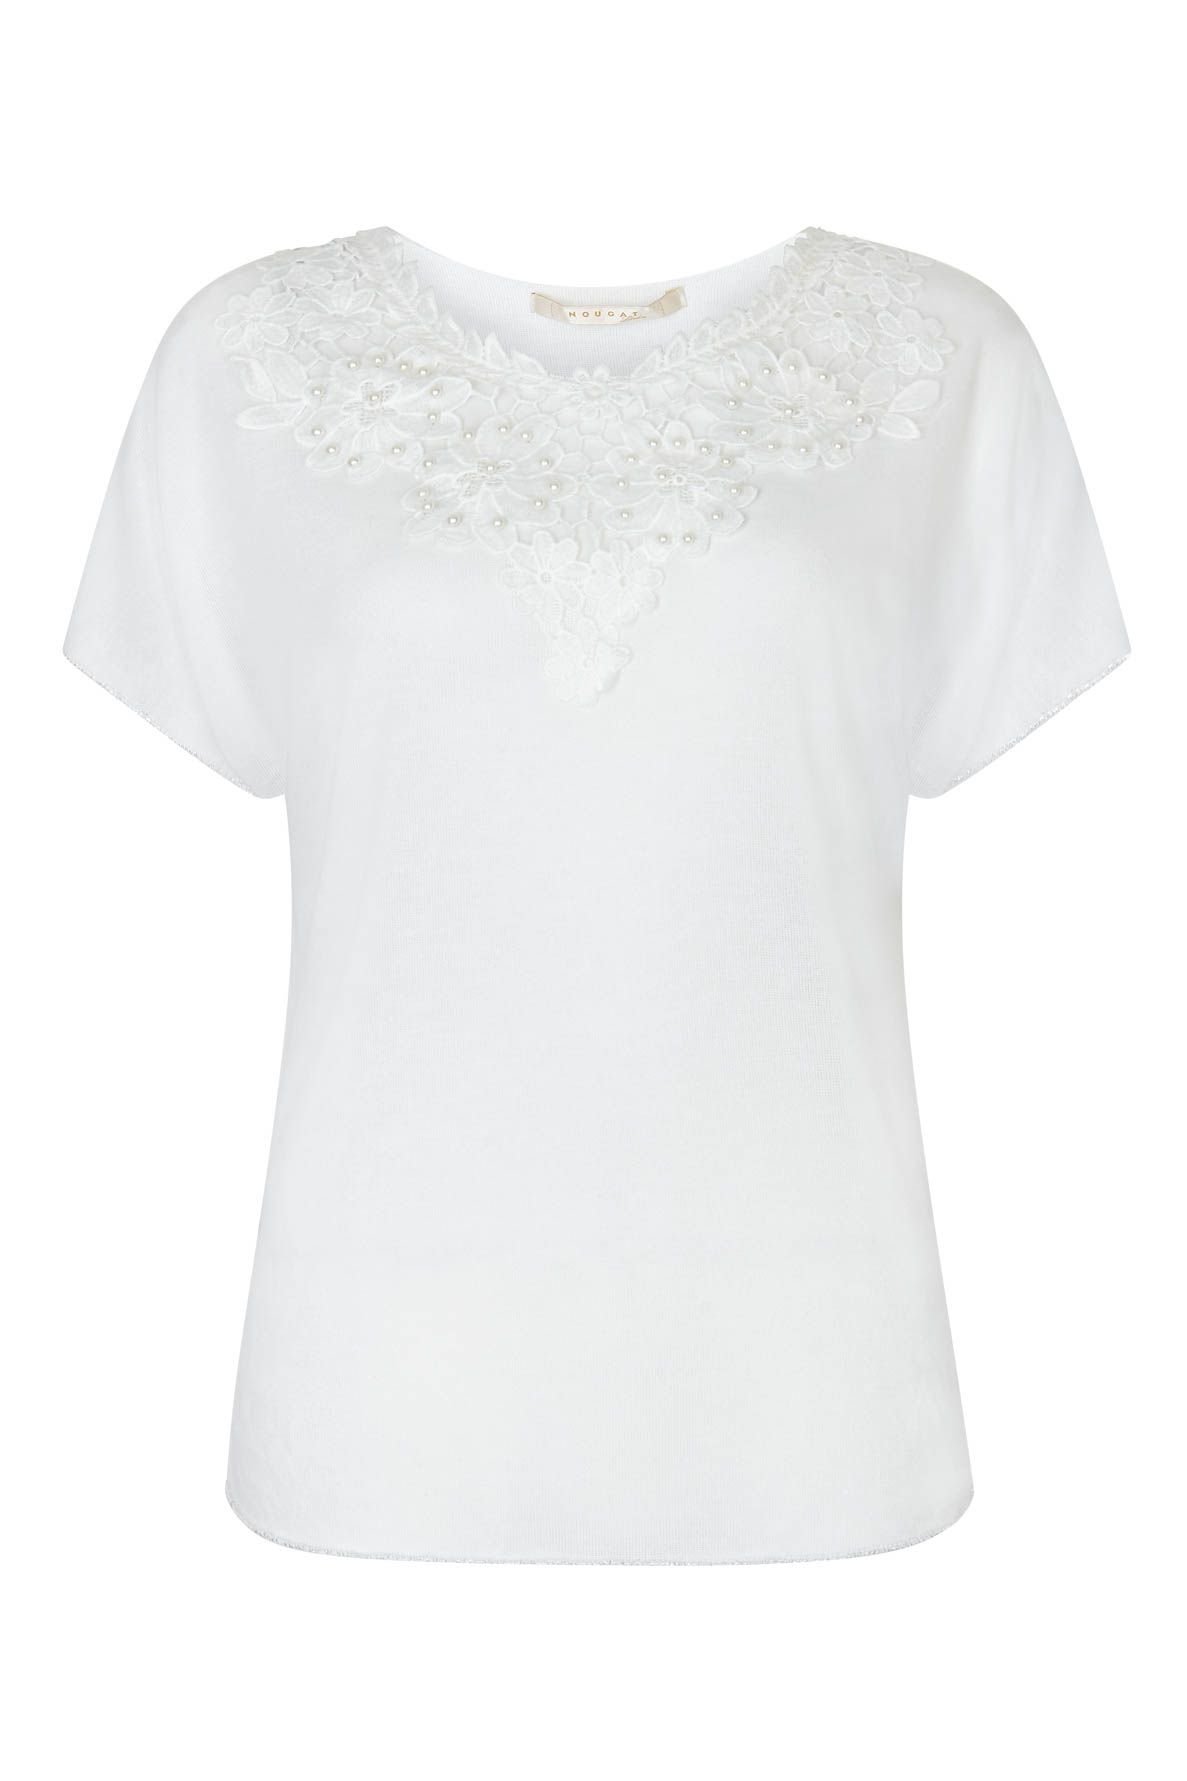 Nougat London Tulip Embroidered Top, White